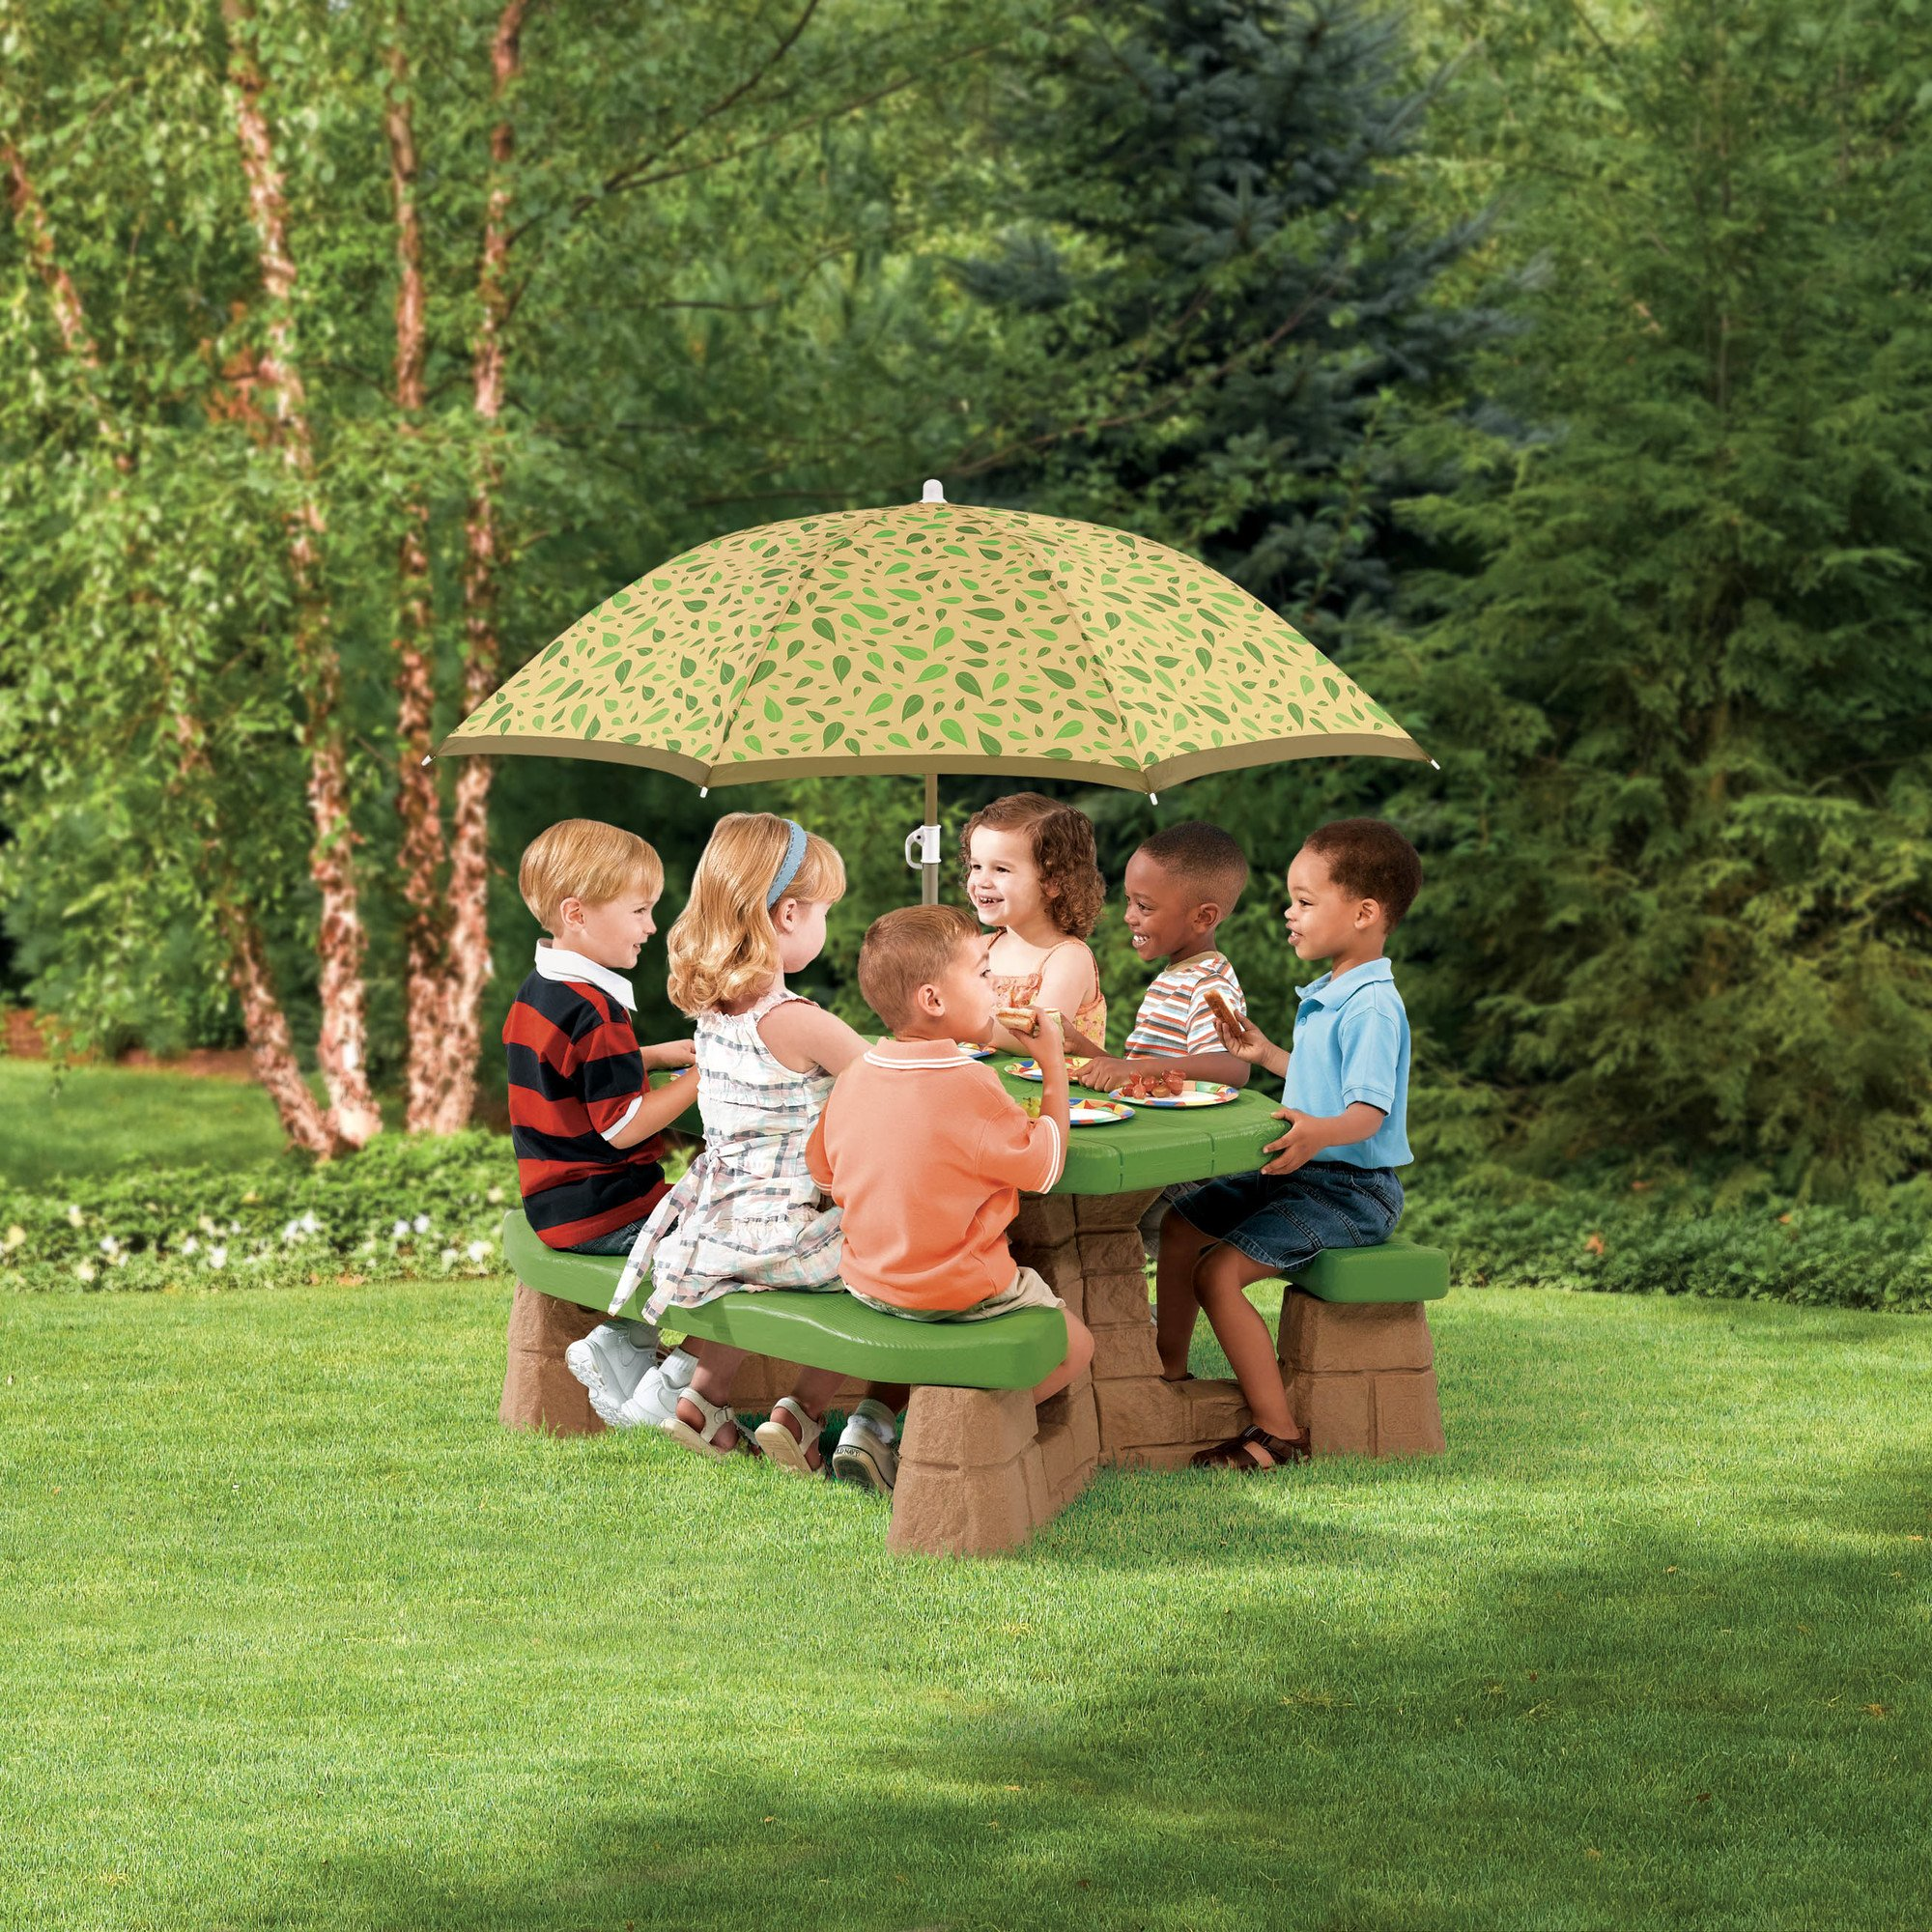 Naturally Playful Picnic Table with 60-inch Umbrella, 3 Years Up, Table Top, 2 Wide Benches, Toddler, Playset, Kids Furntiure, Bundle with Our Expert Guide with Tips for Home Arrangement by AB-Land (Image #1)